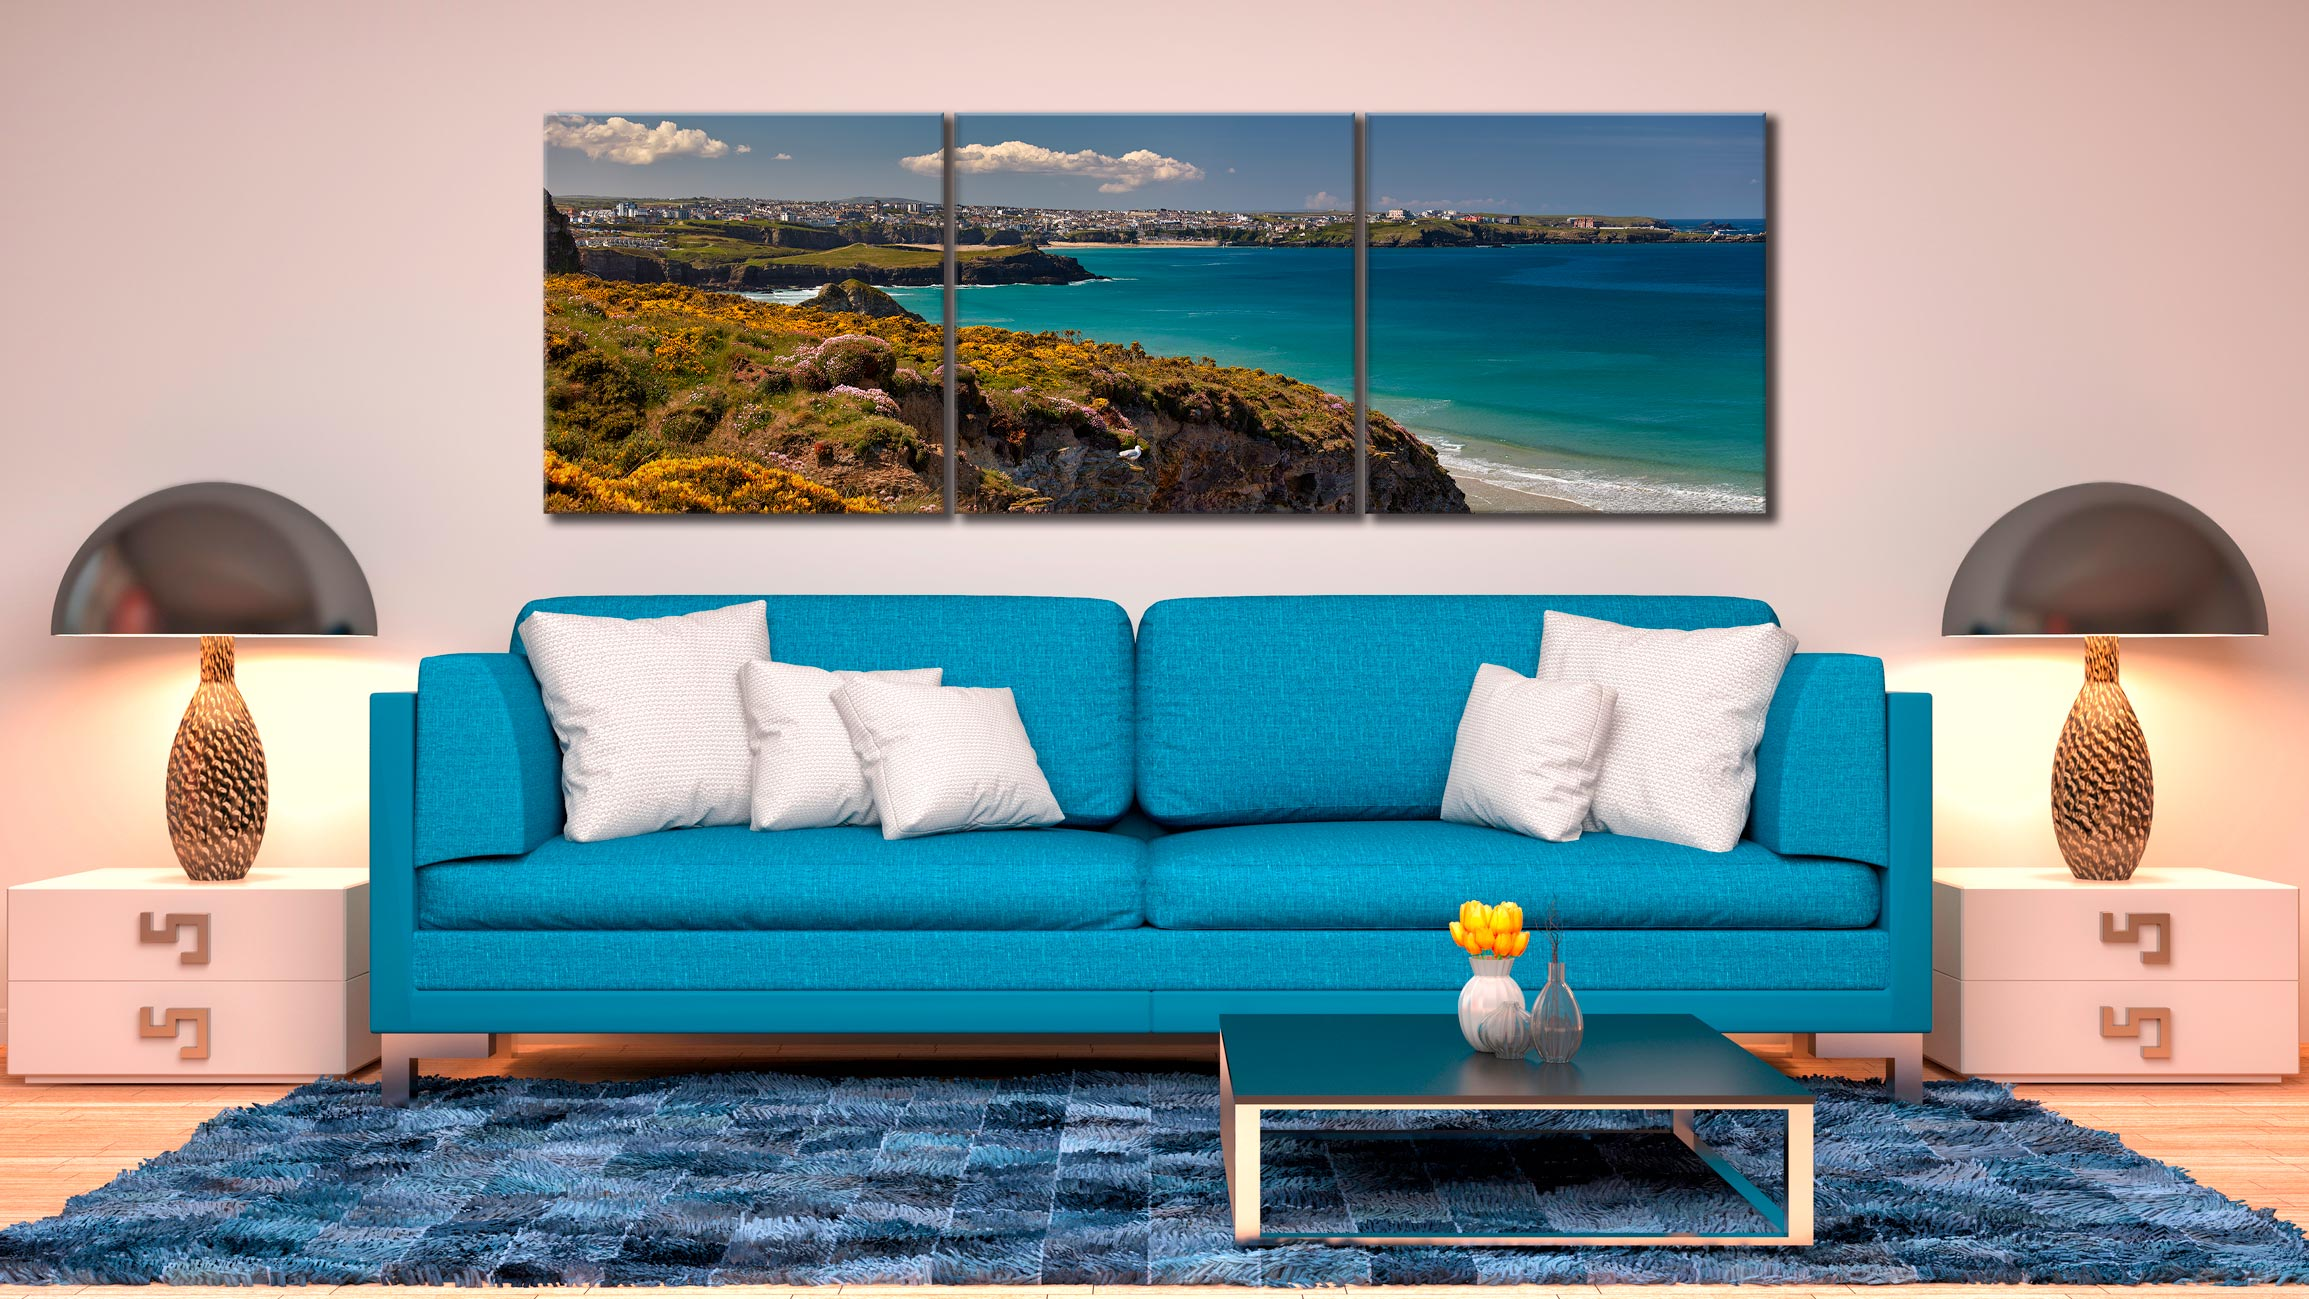 Wildflowers on Porth Cliffs - 3 Panel Canvas on Wall